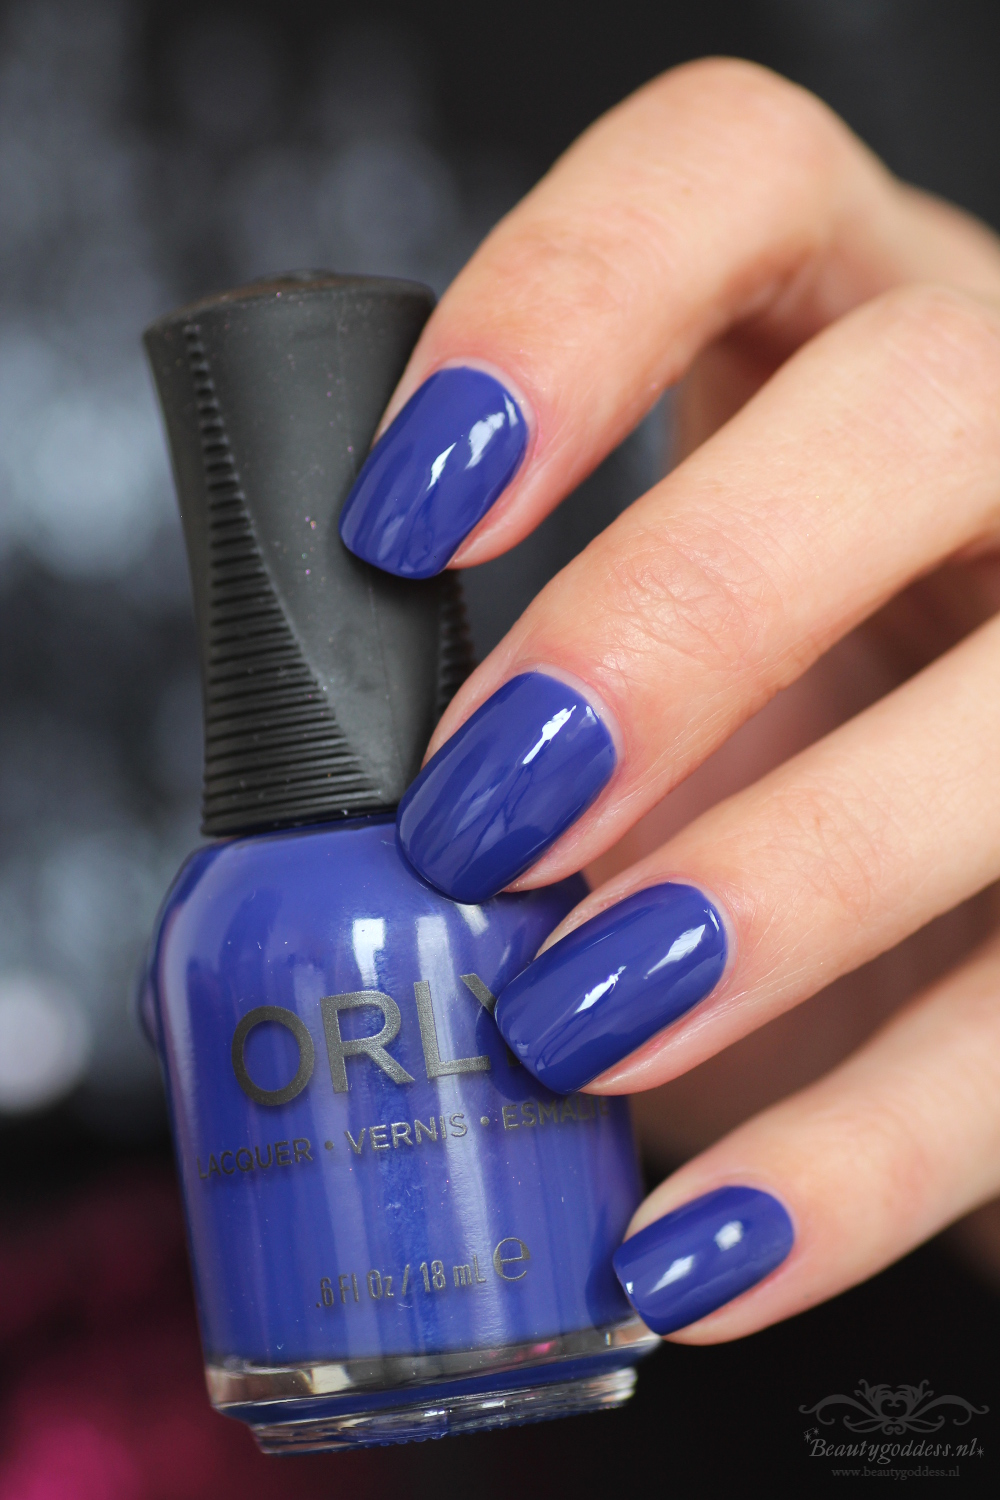 orly-sunset-strip-the-whos-who